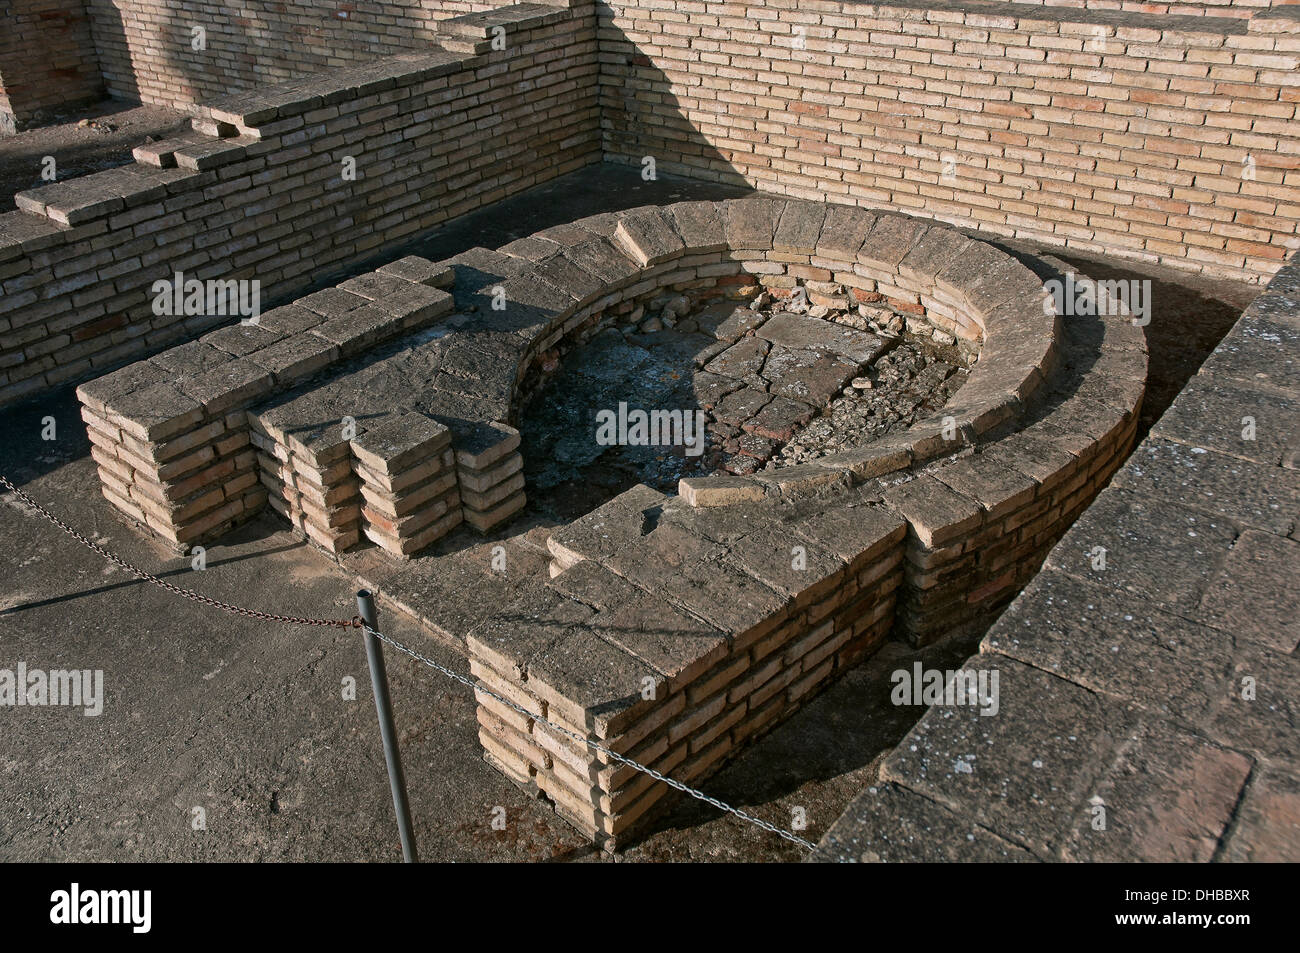 Bread oven, House of the Birds, Roman ruins of Italica, Santiponce, Seville-province, Region of Andalusia, Spain, Europe - Stock Image